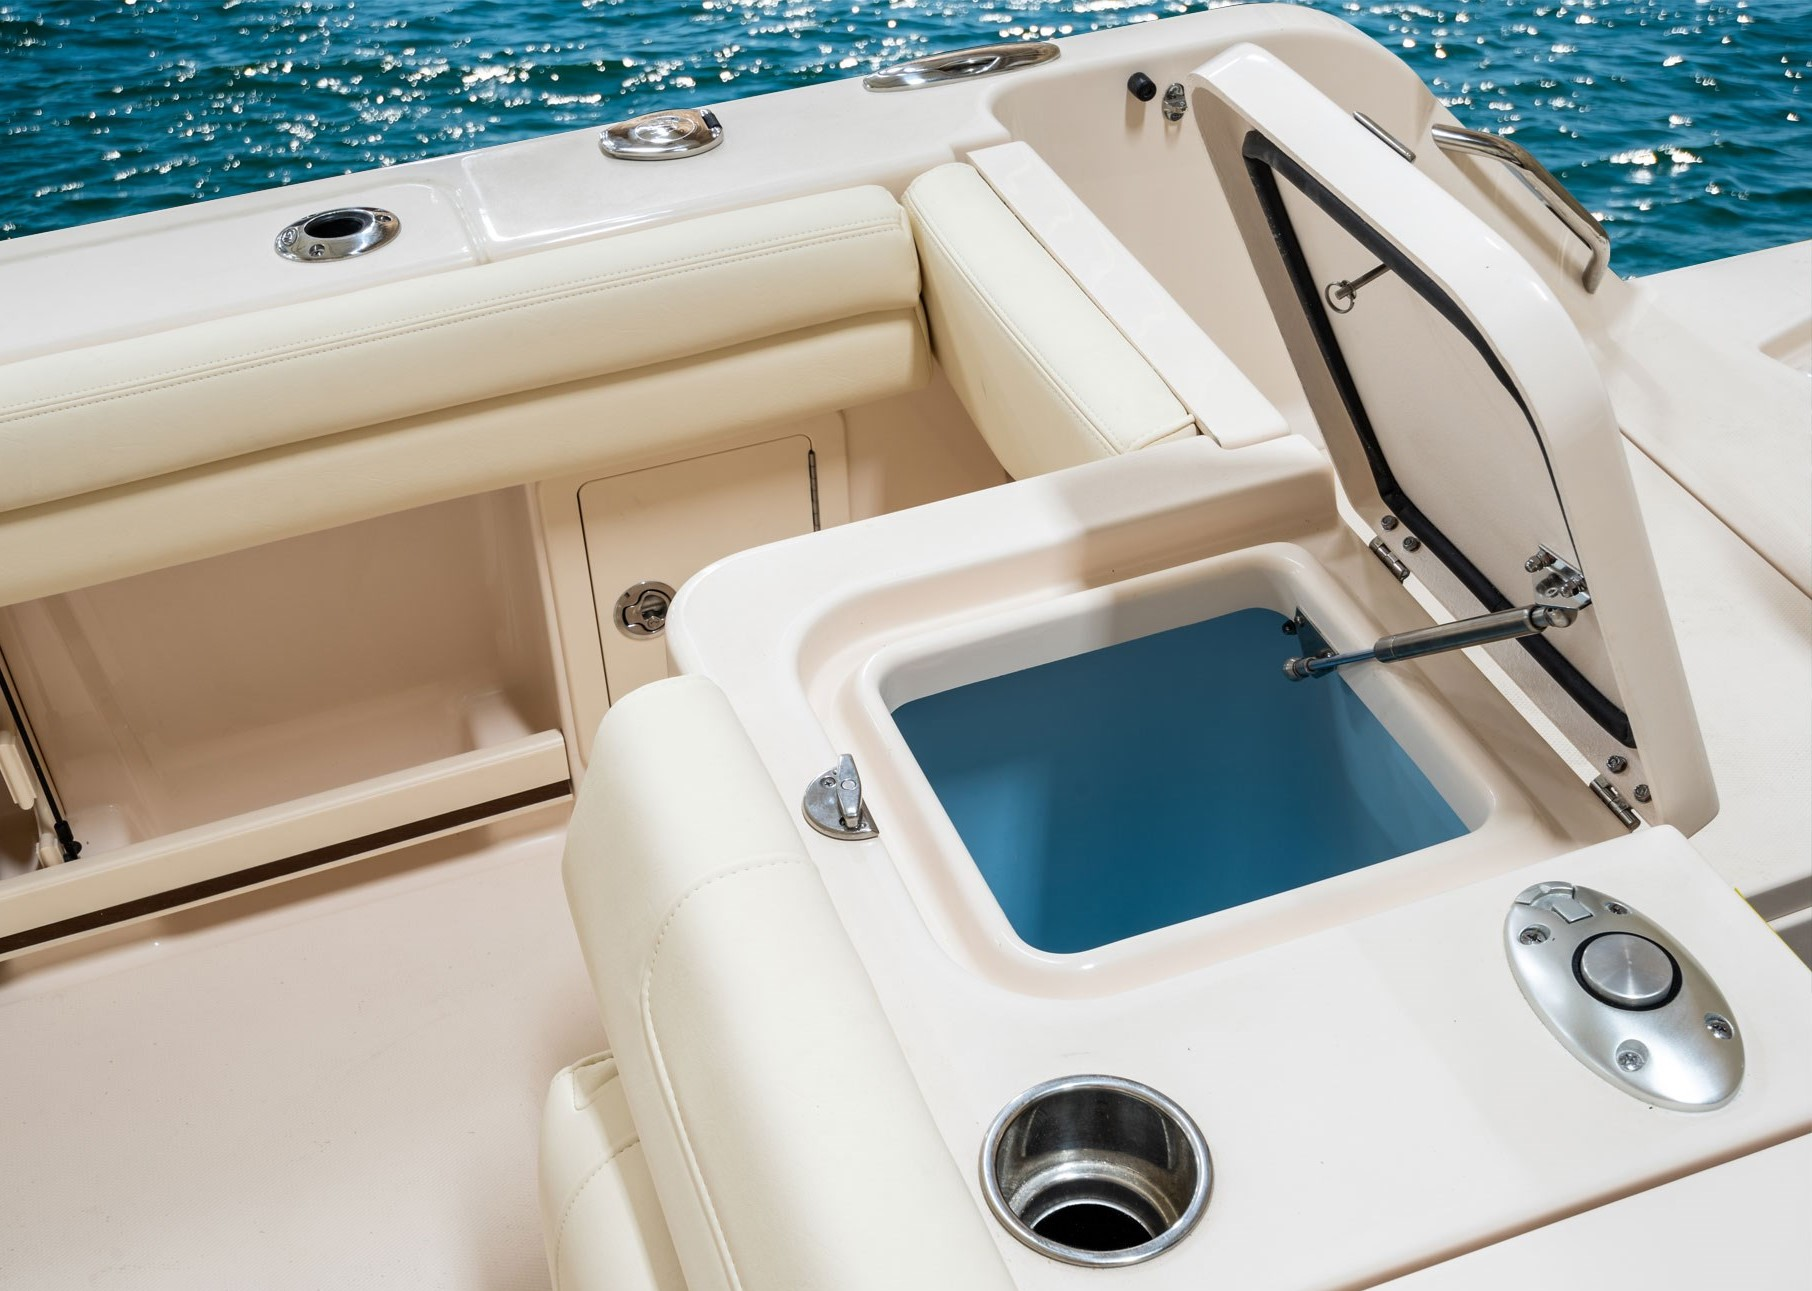 Grady-White Freedom 235 23-foot dual console aft livewell